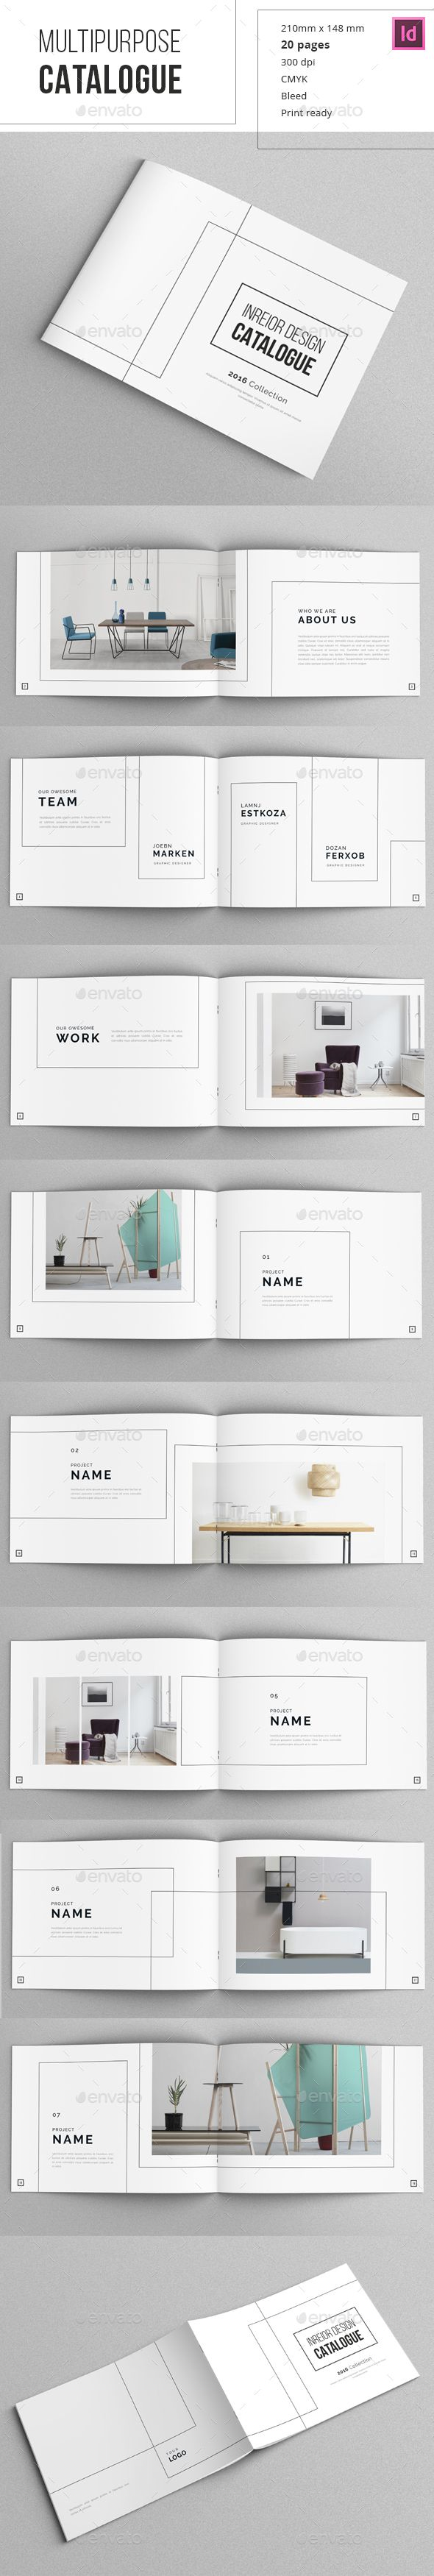 77 best 画册 images on Pinterest | Editorial design, Brochure ...